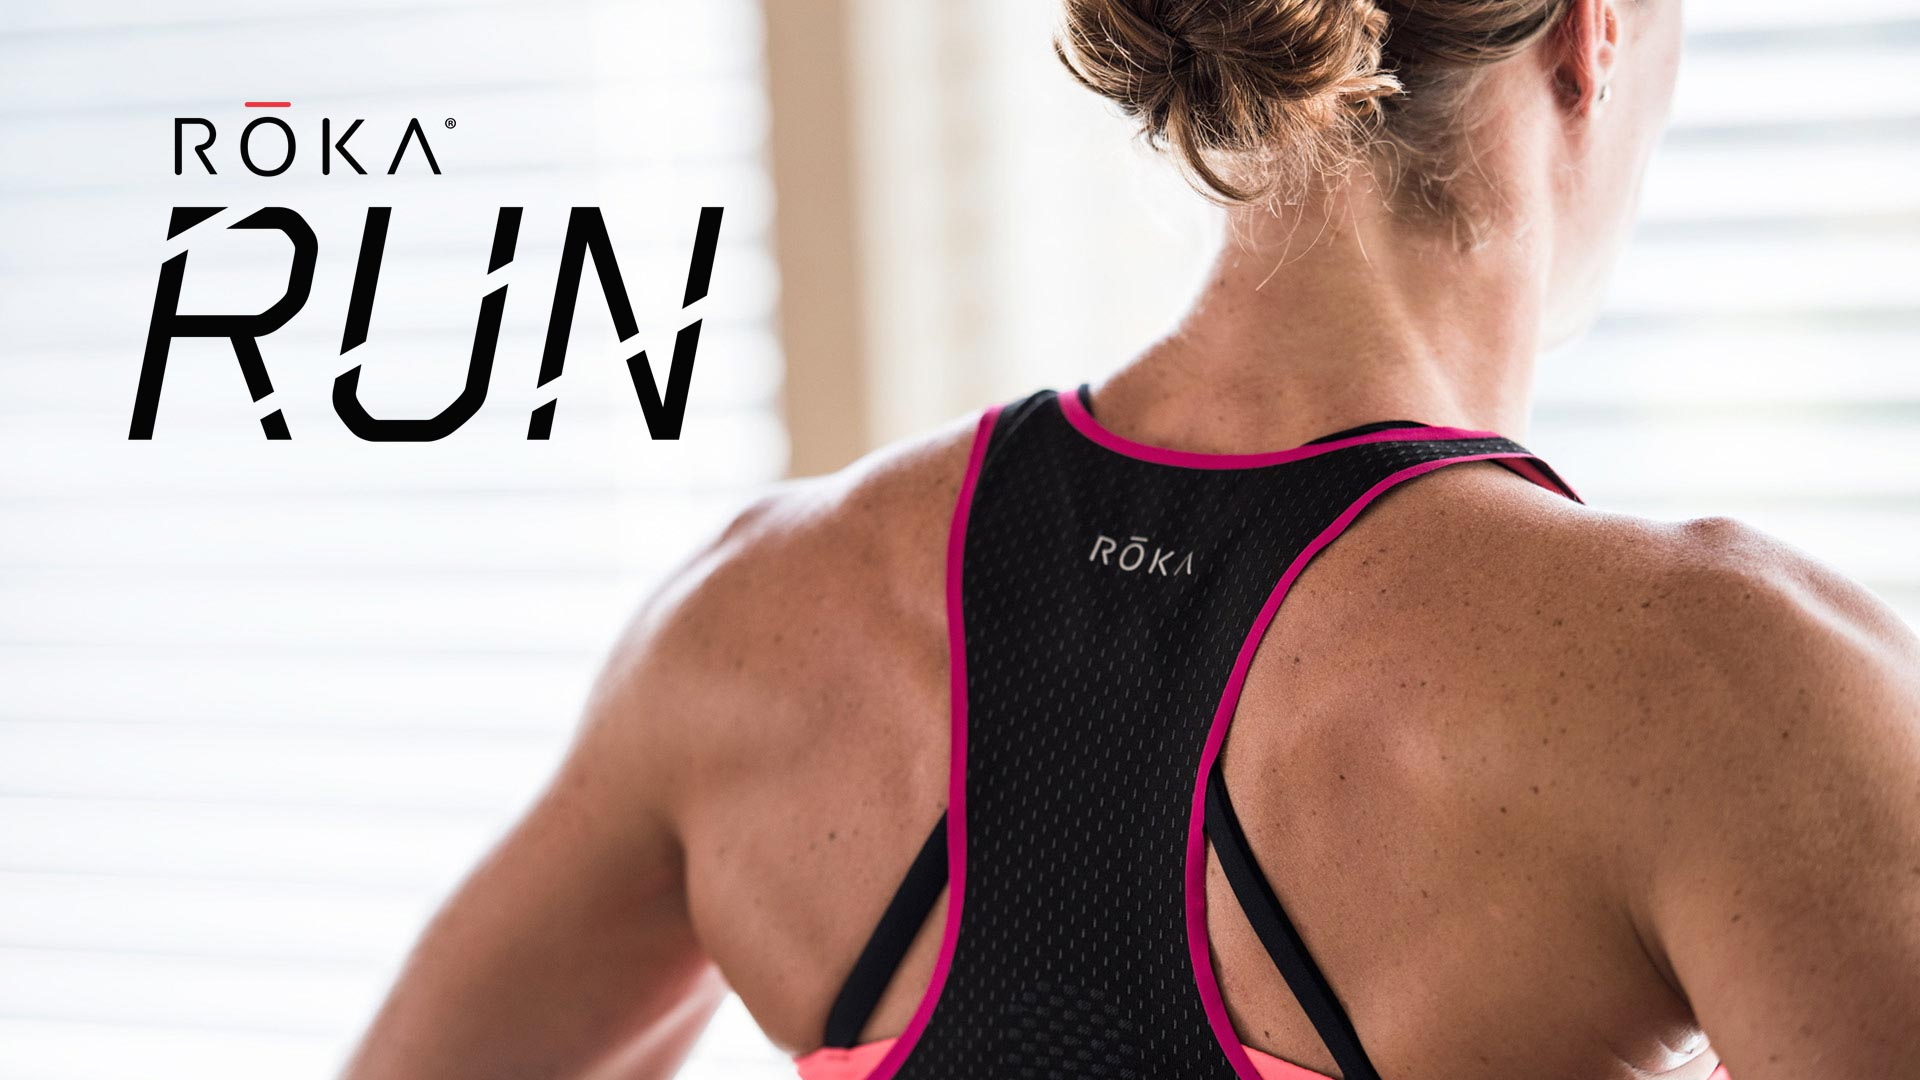 ROKA Women's Run Tops